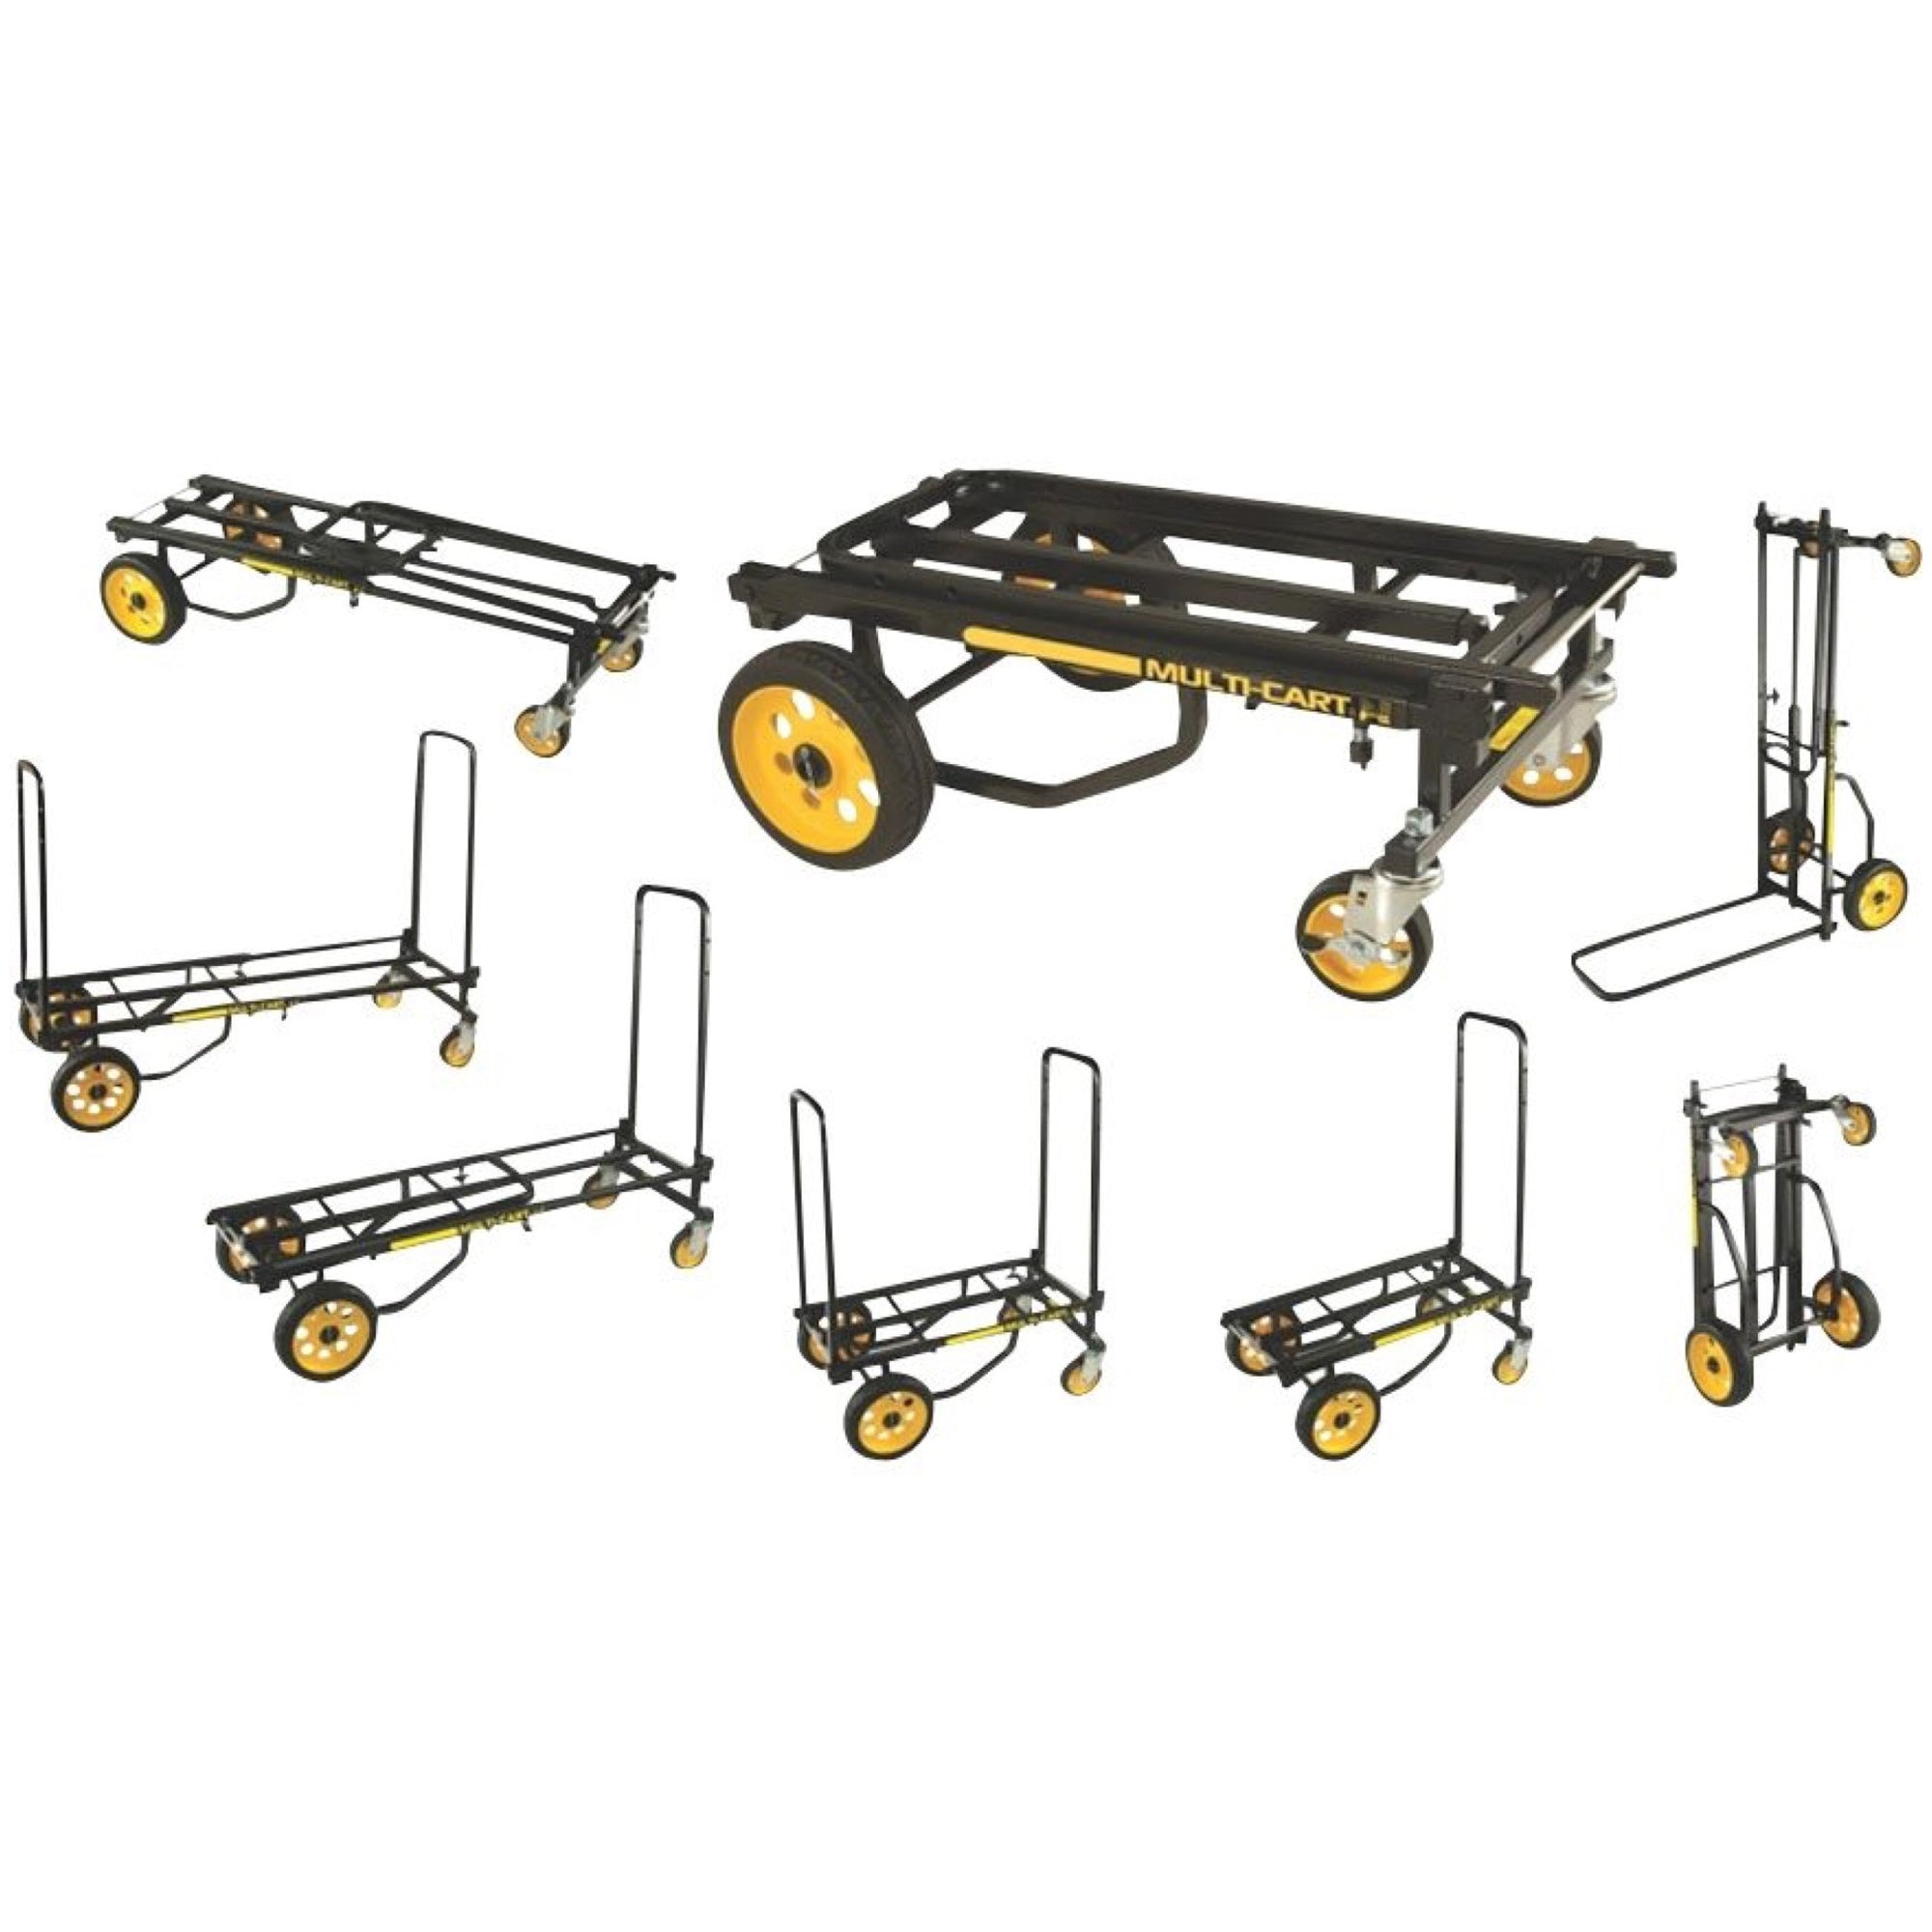 RocknRoller Multi-Cart Equipment Cart with R-Trac Wheels, R10RT